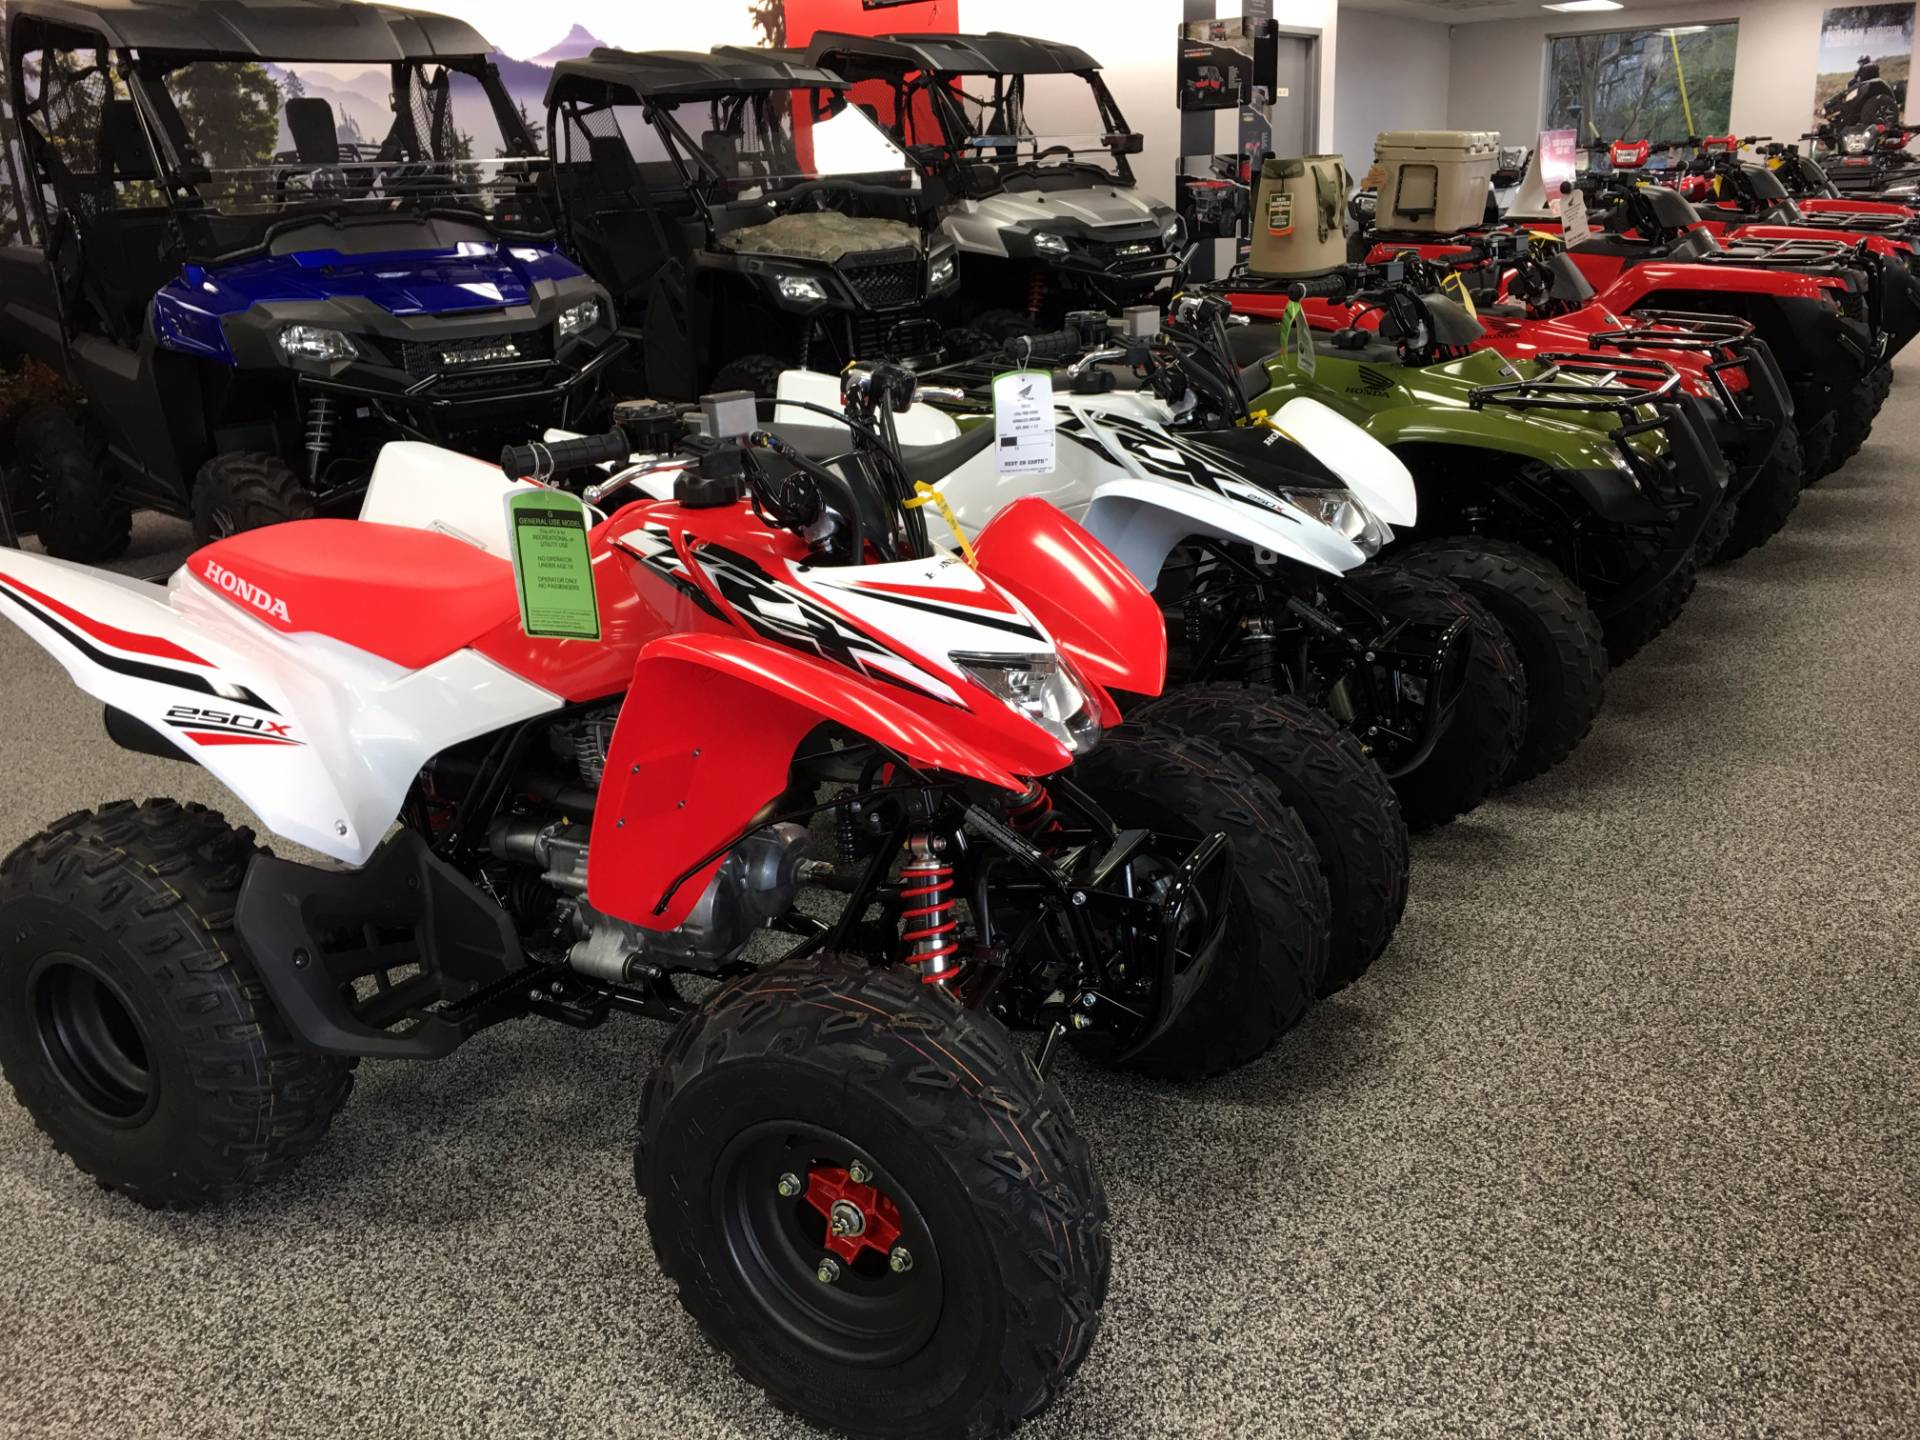 New 2017 honda all honda atv and sxs pricing to low to for Honda financial services customer service number